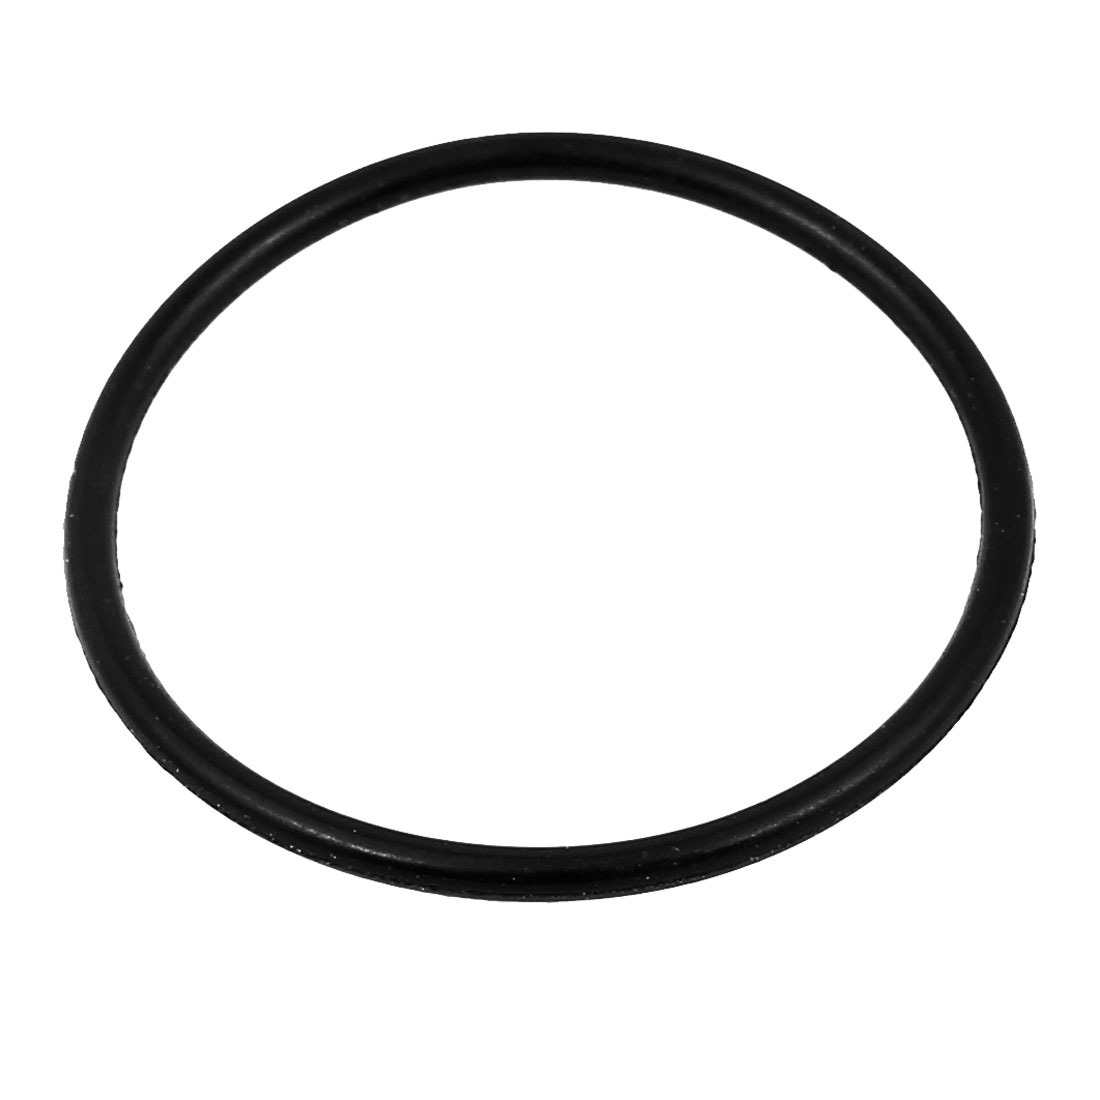 Single 27mm x 1.5mm Rubber O-rings NBR Heat Resistant Sealing Ring Grommets